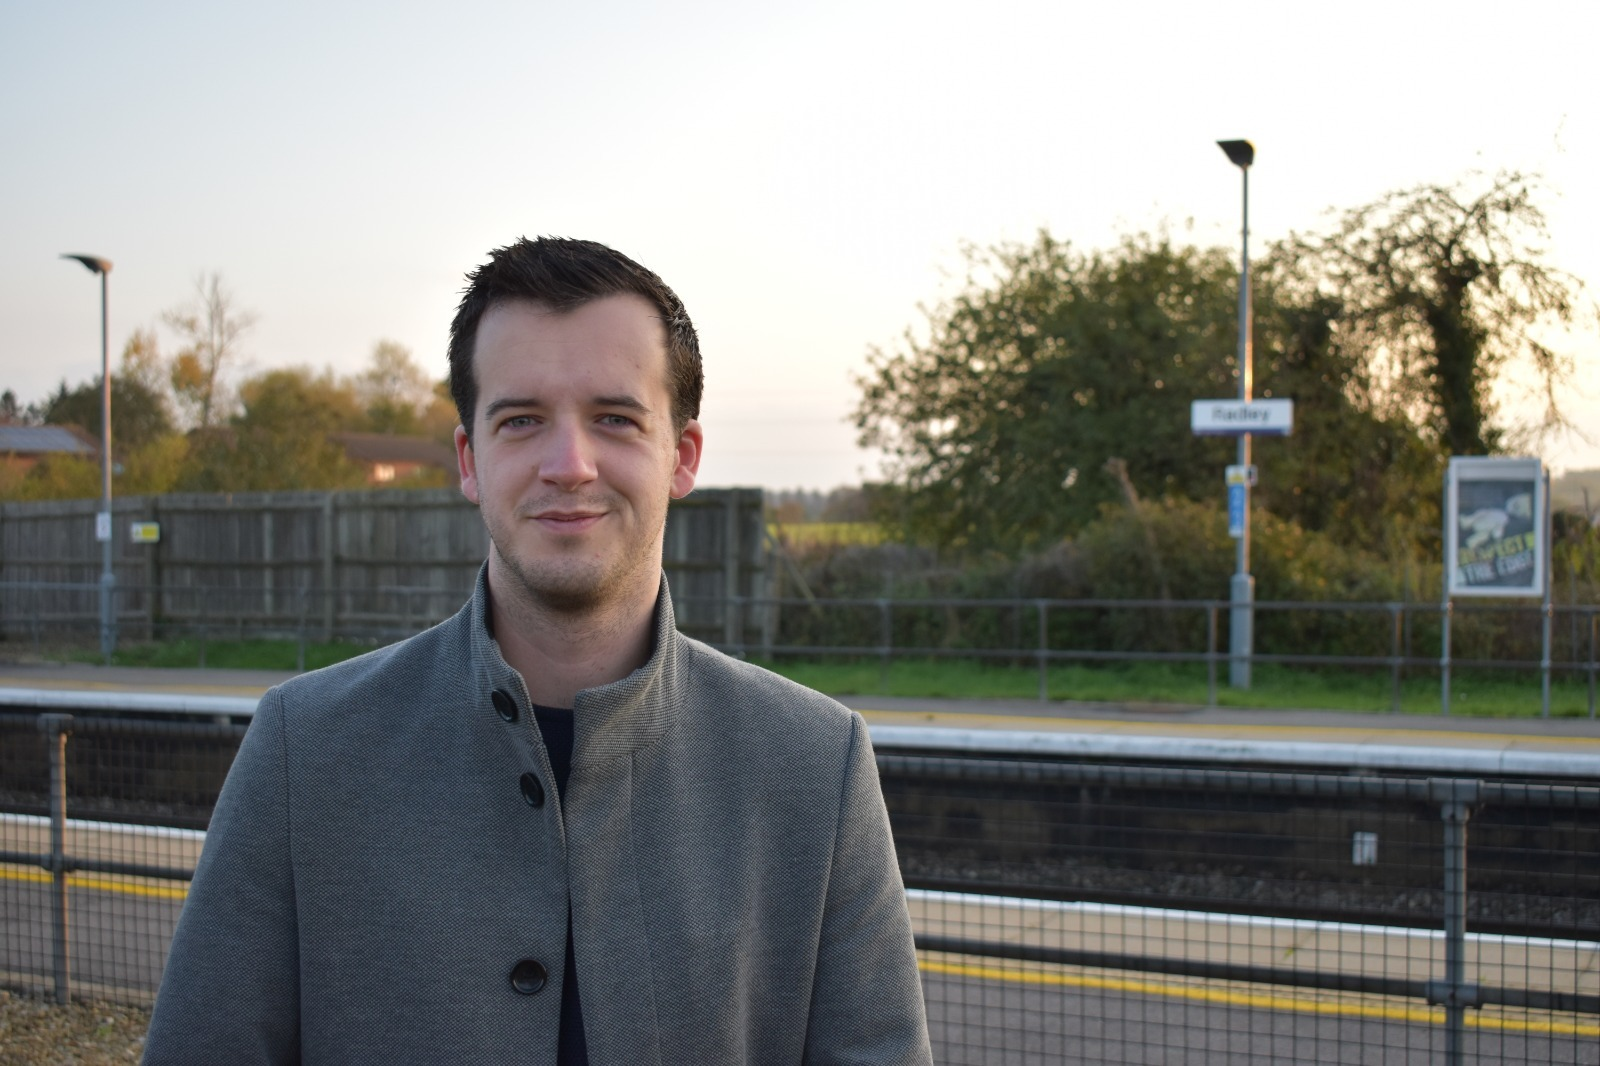 General Election 2019: James Fredrickson, Conservative candidate for Oxford West and Abingdon